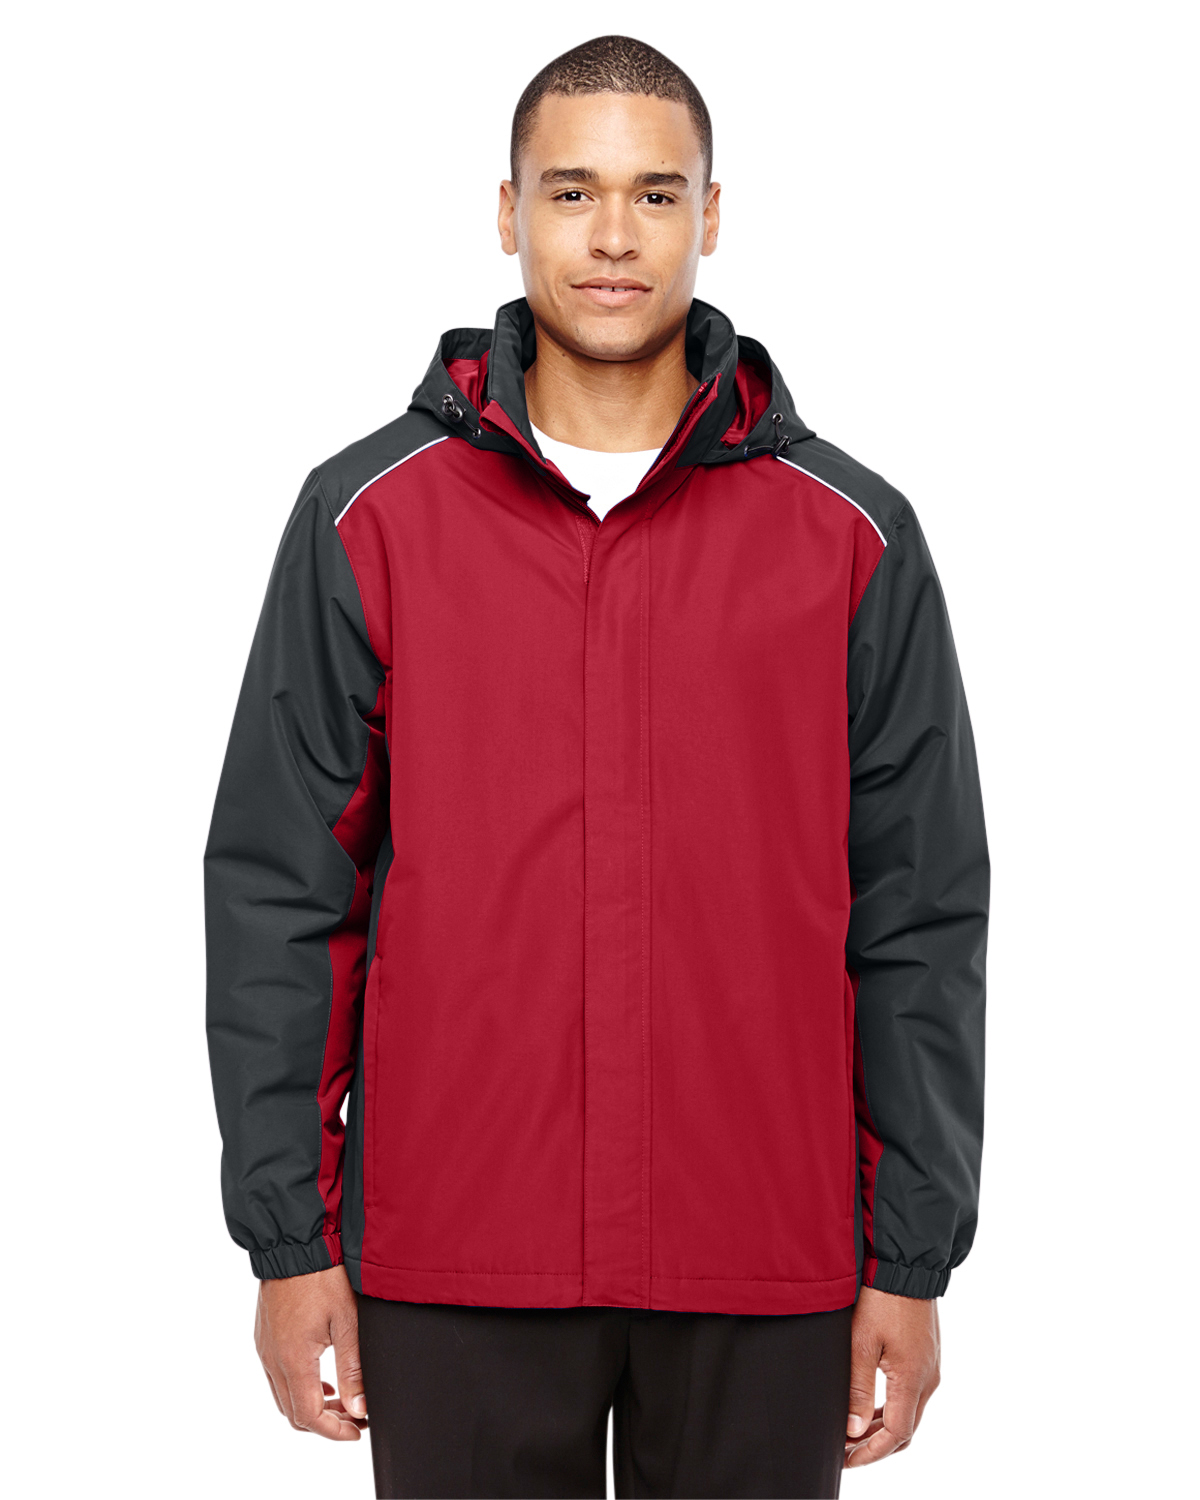 Ash City - 88225, Men's Core 365 Inspire Colorblock All-Season Jacket - Logo Masters International